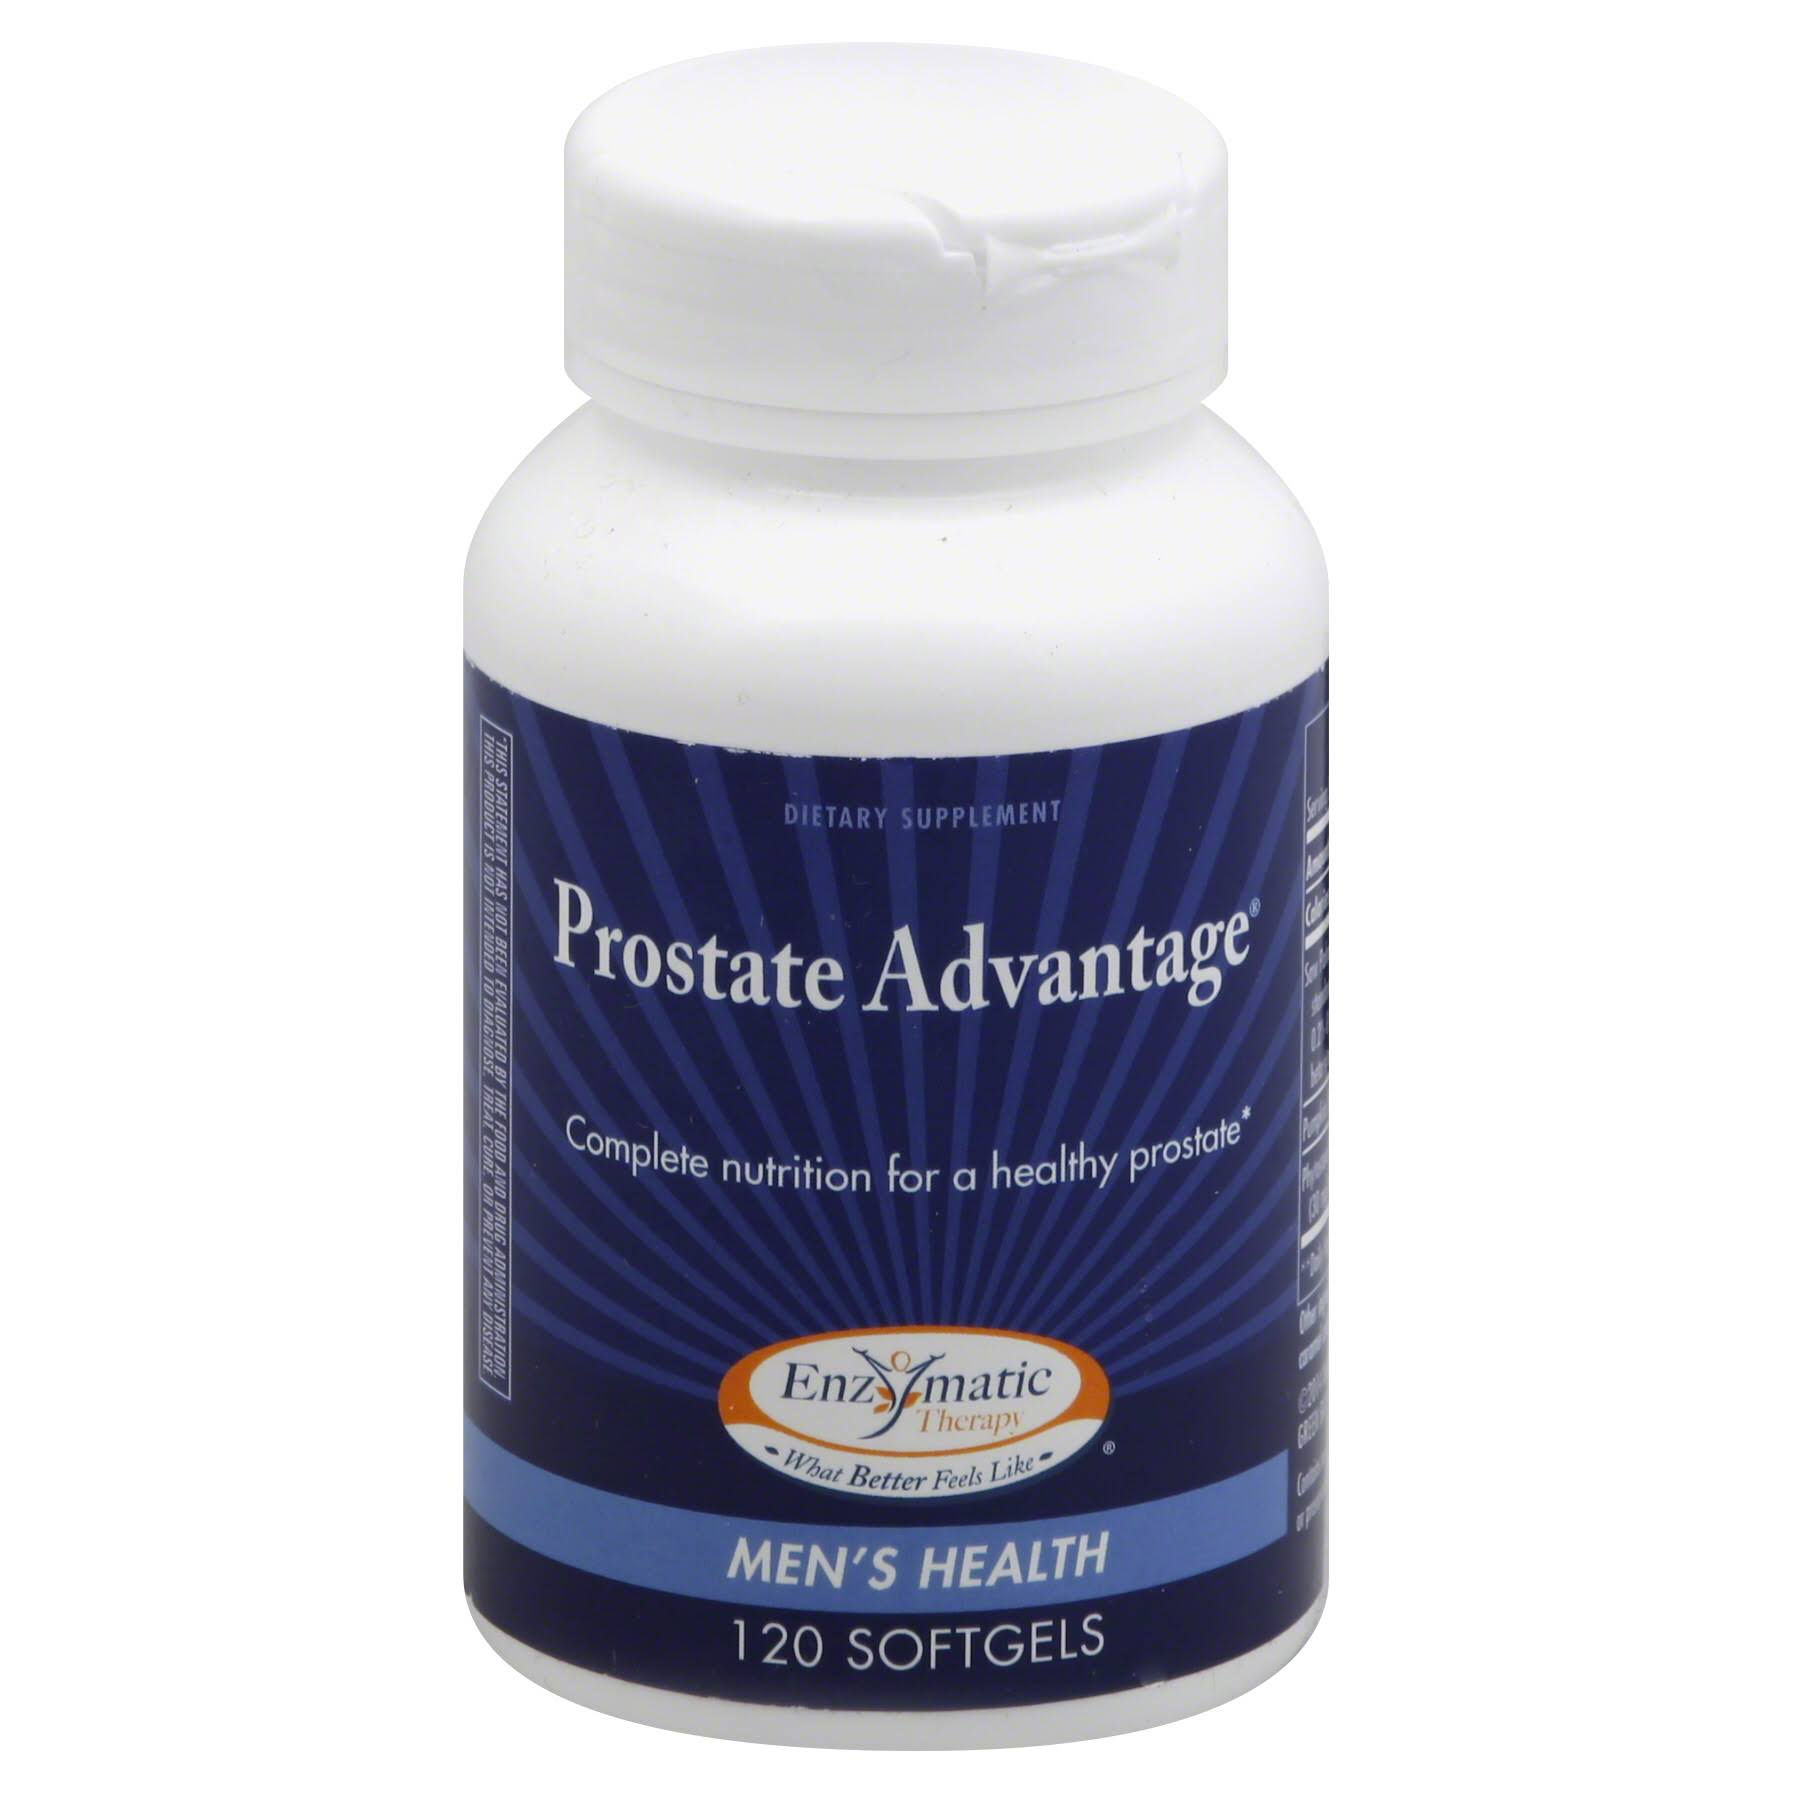 Enzymatic Therapy Prostate Advantage Supplement - 120 Softgels